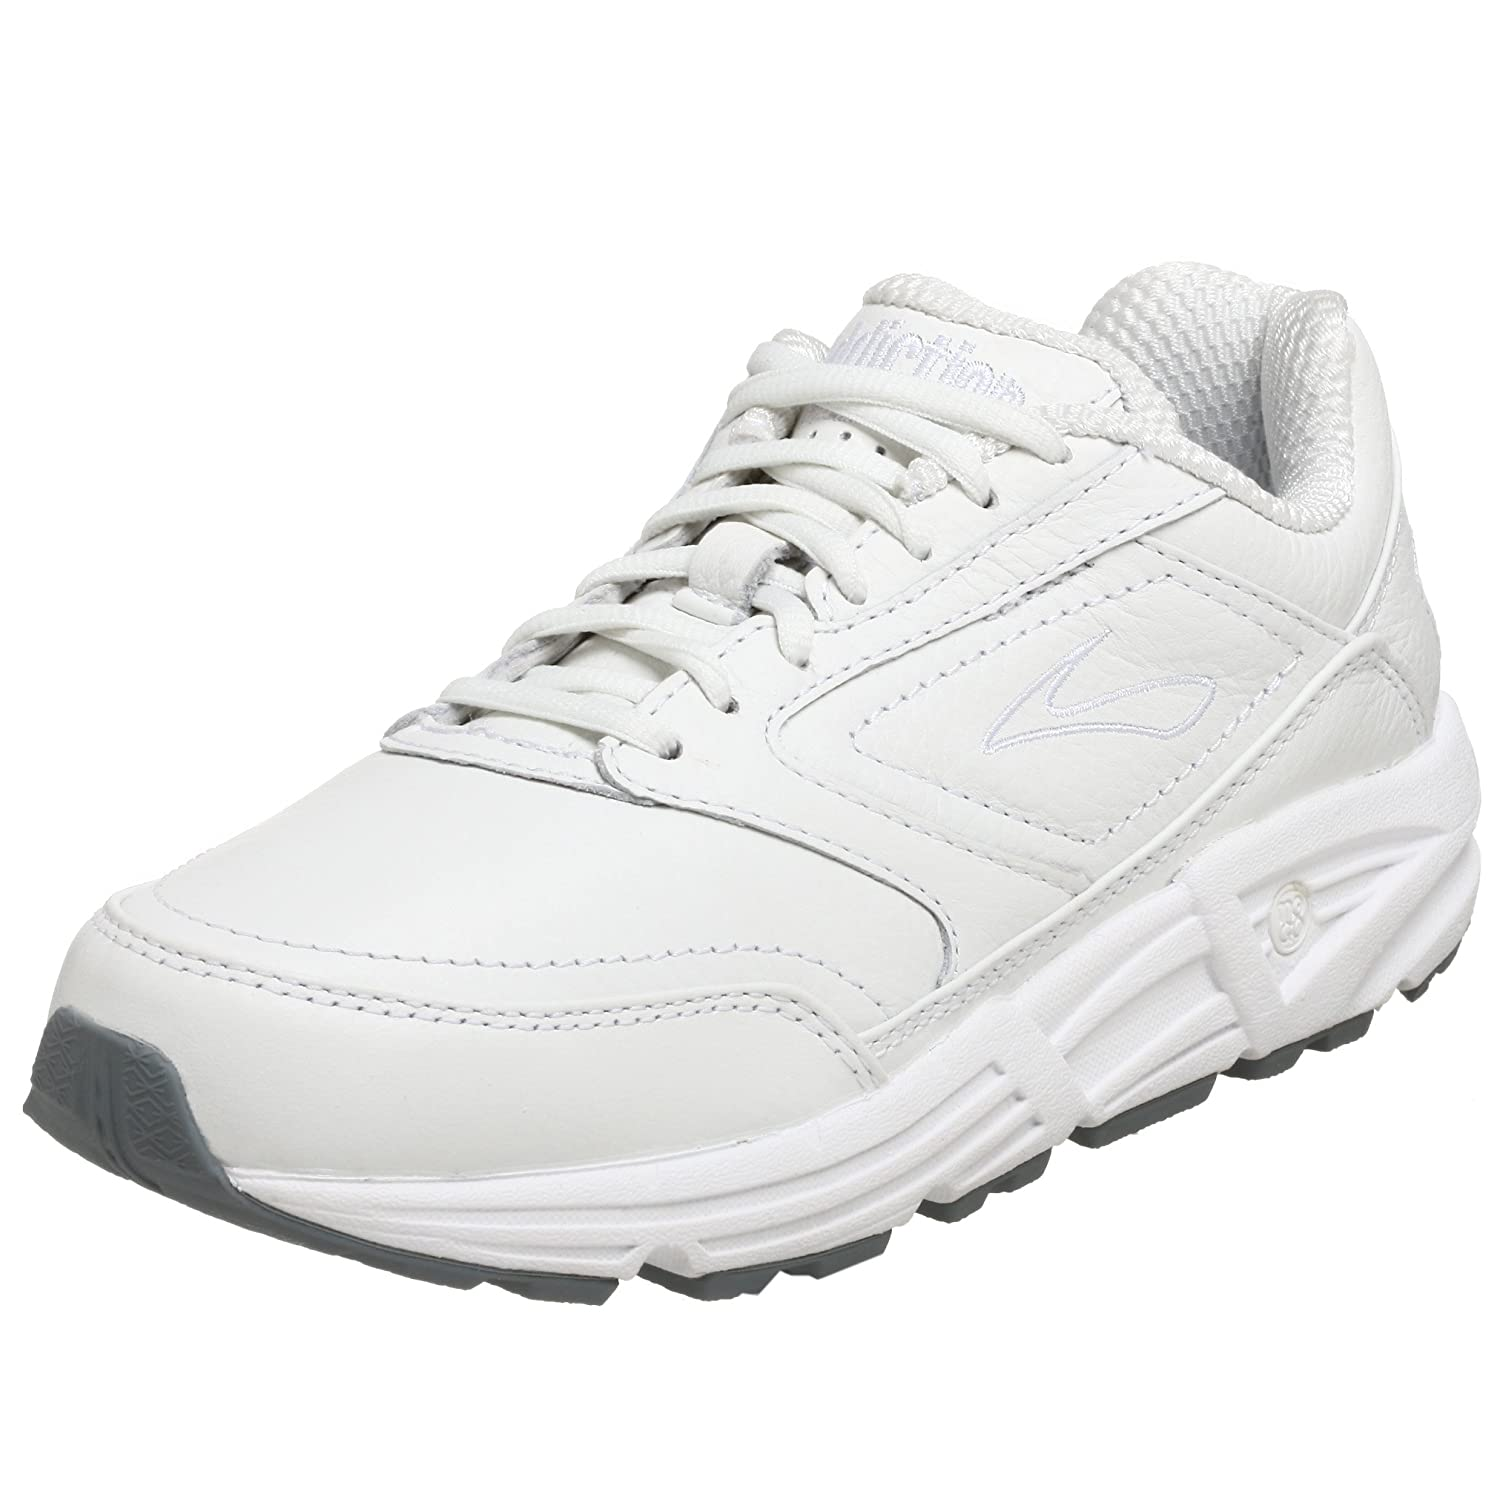 Brooks Women's Addiction Walker Walking Shoes B0012IJX3E 8 B(M) US|White